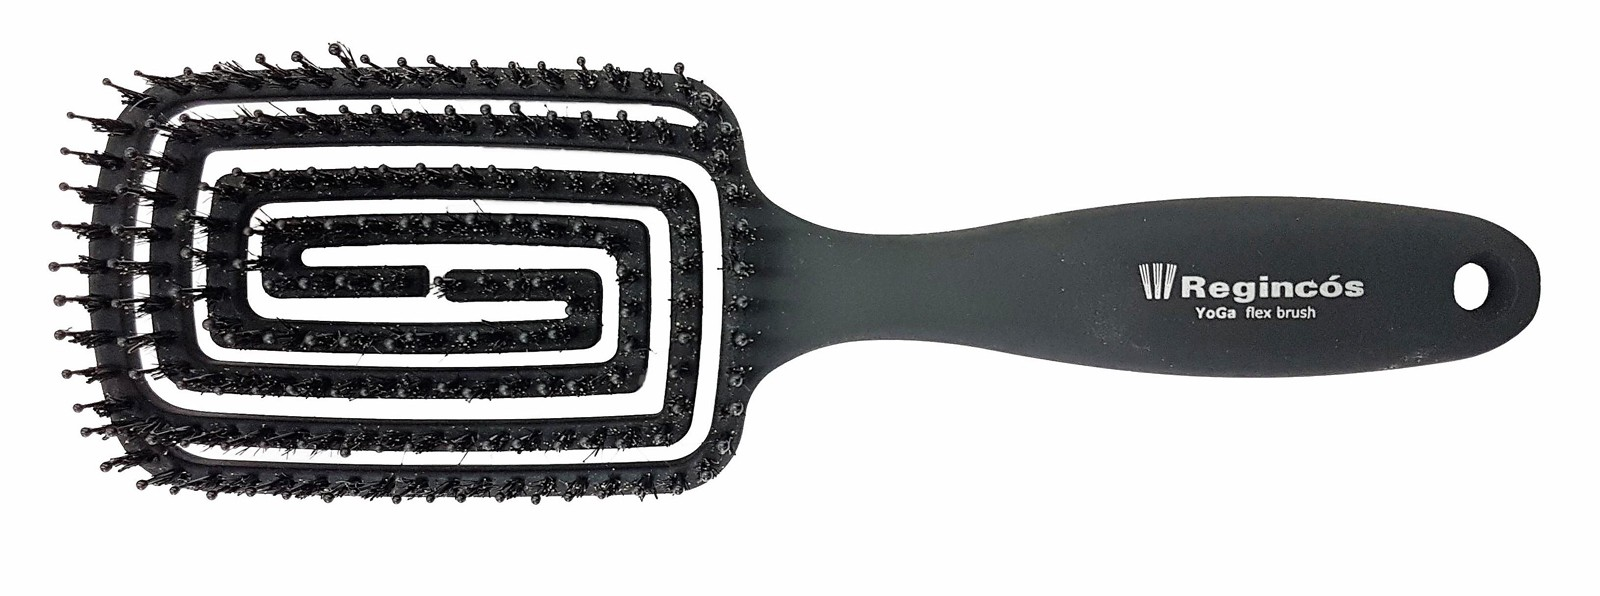 YoGa brush